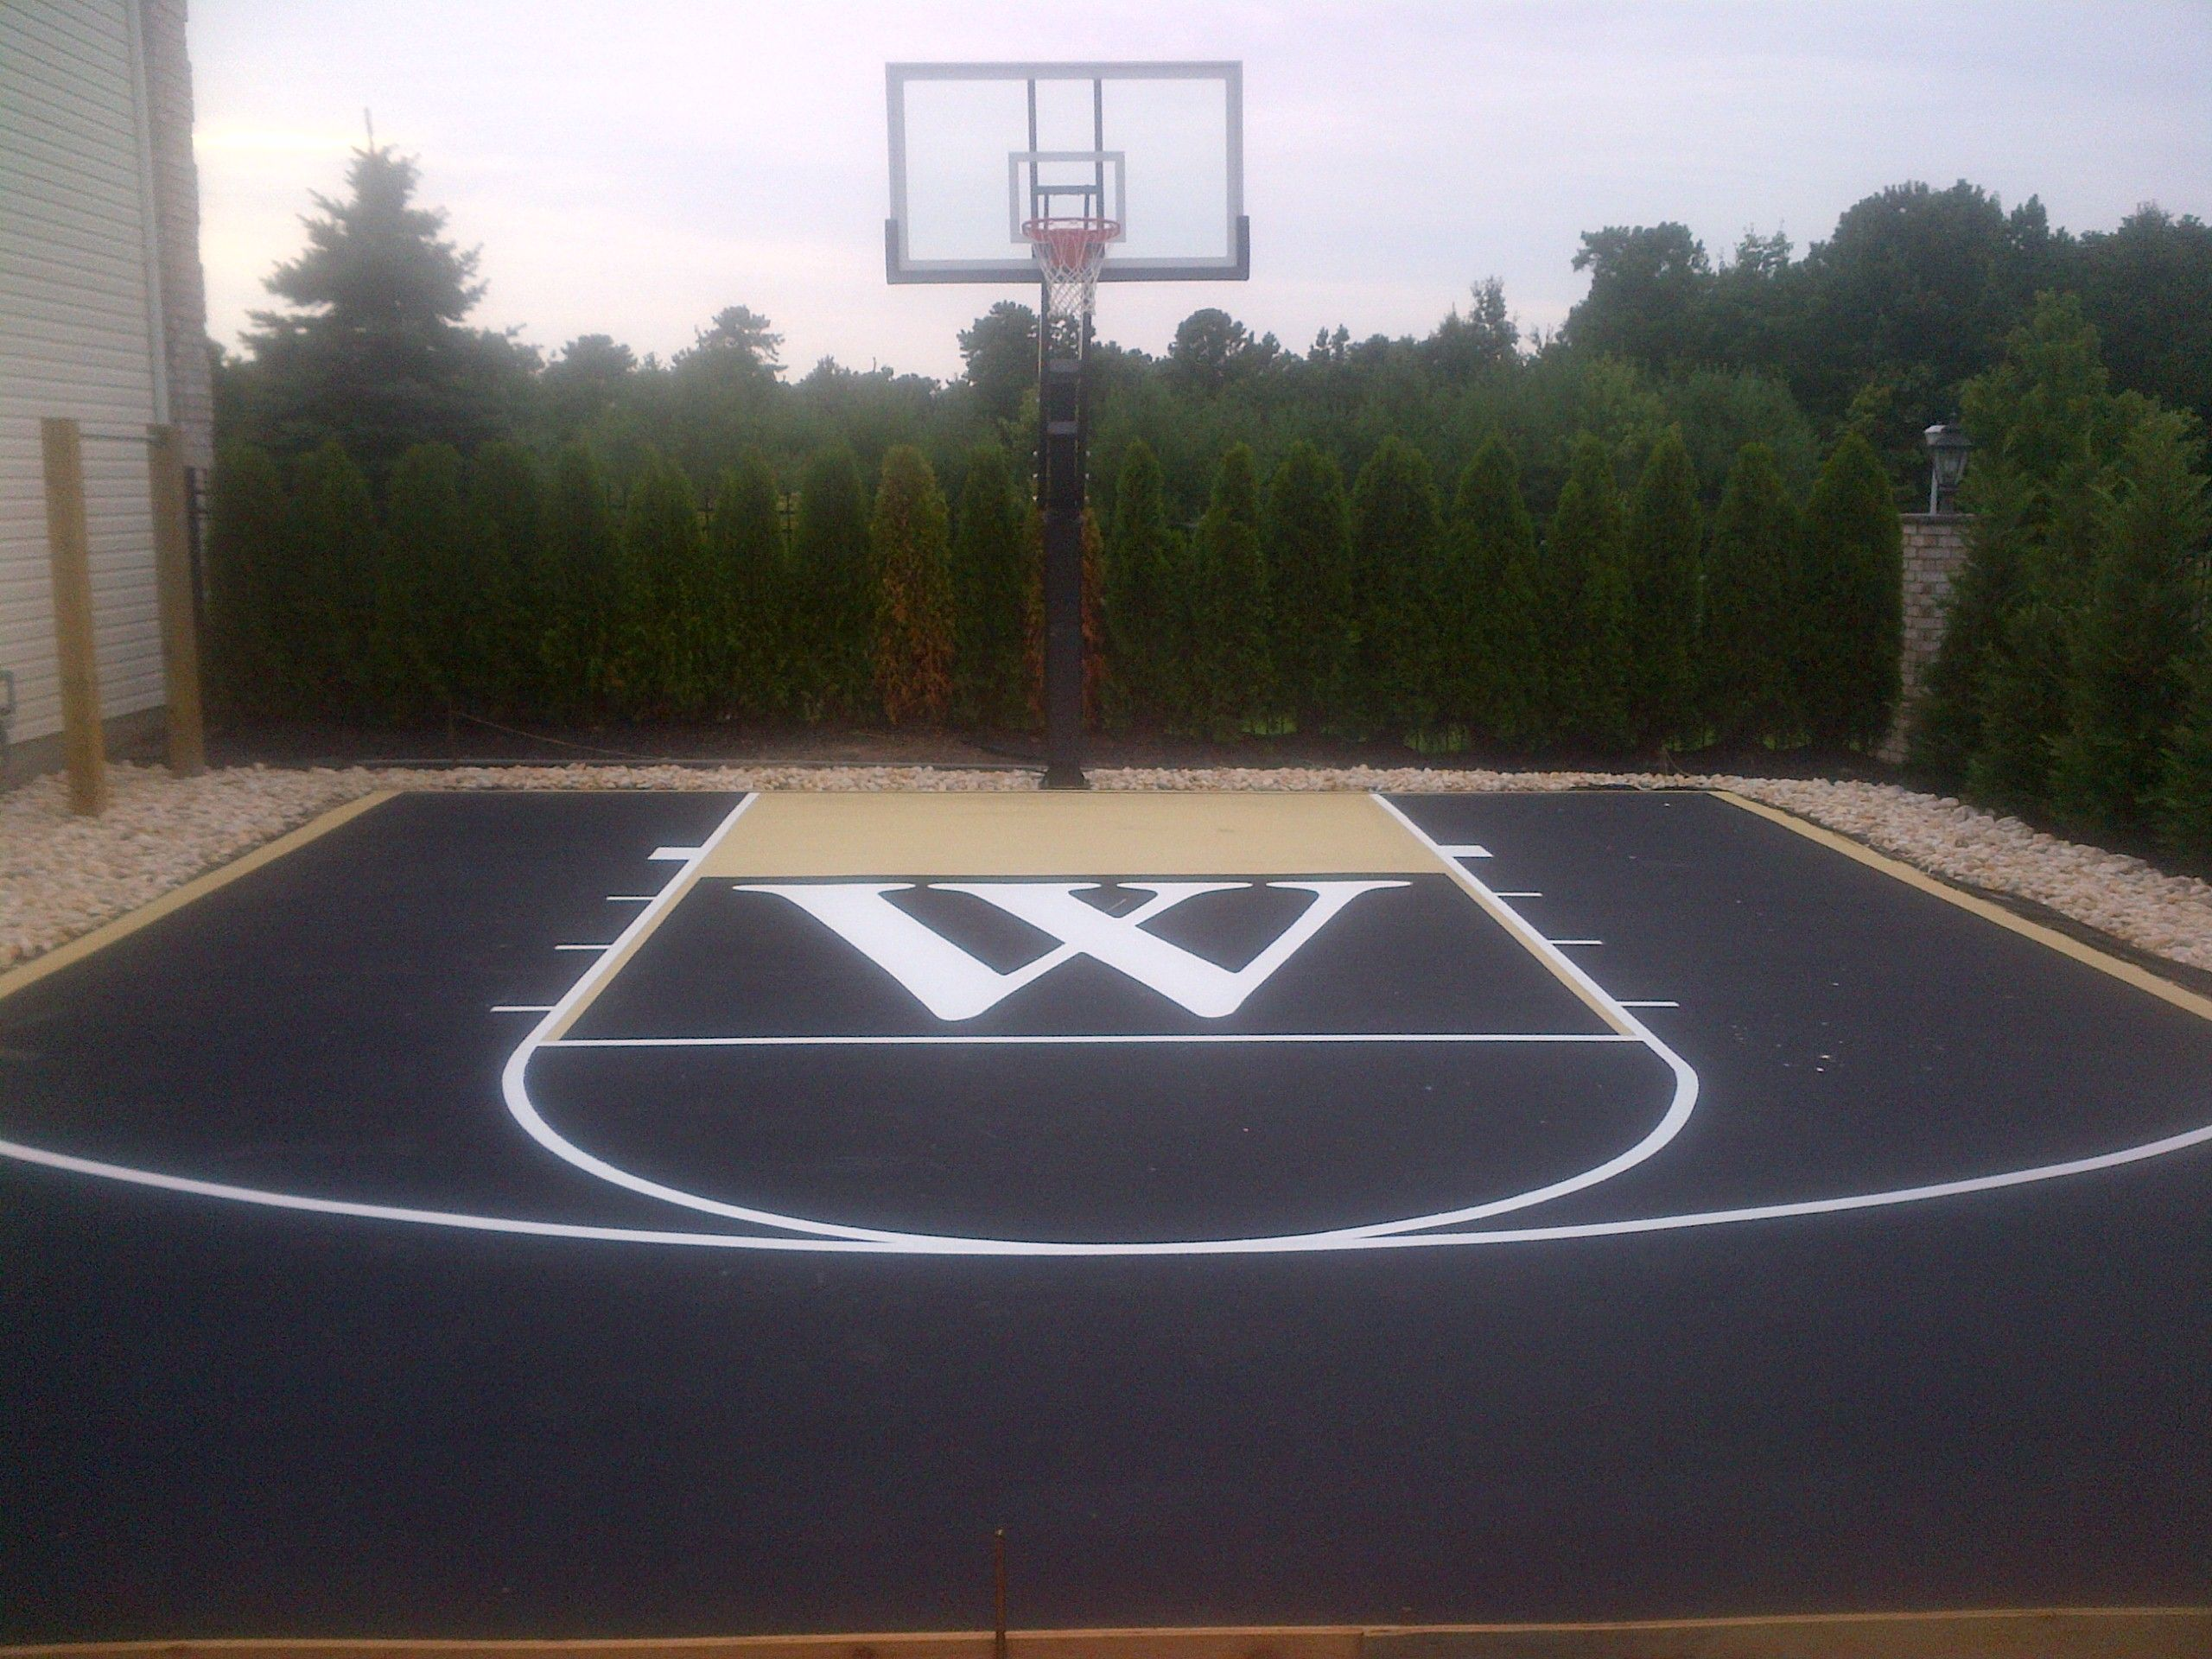 Asphalt And Concrete Can Be Painted With Tennis Court Paint They